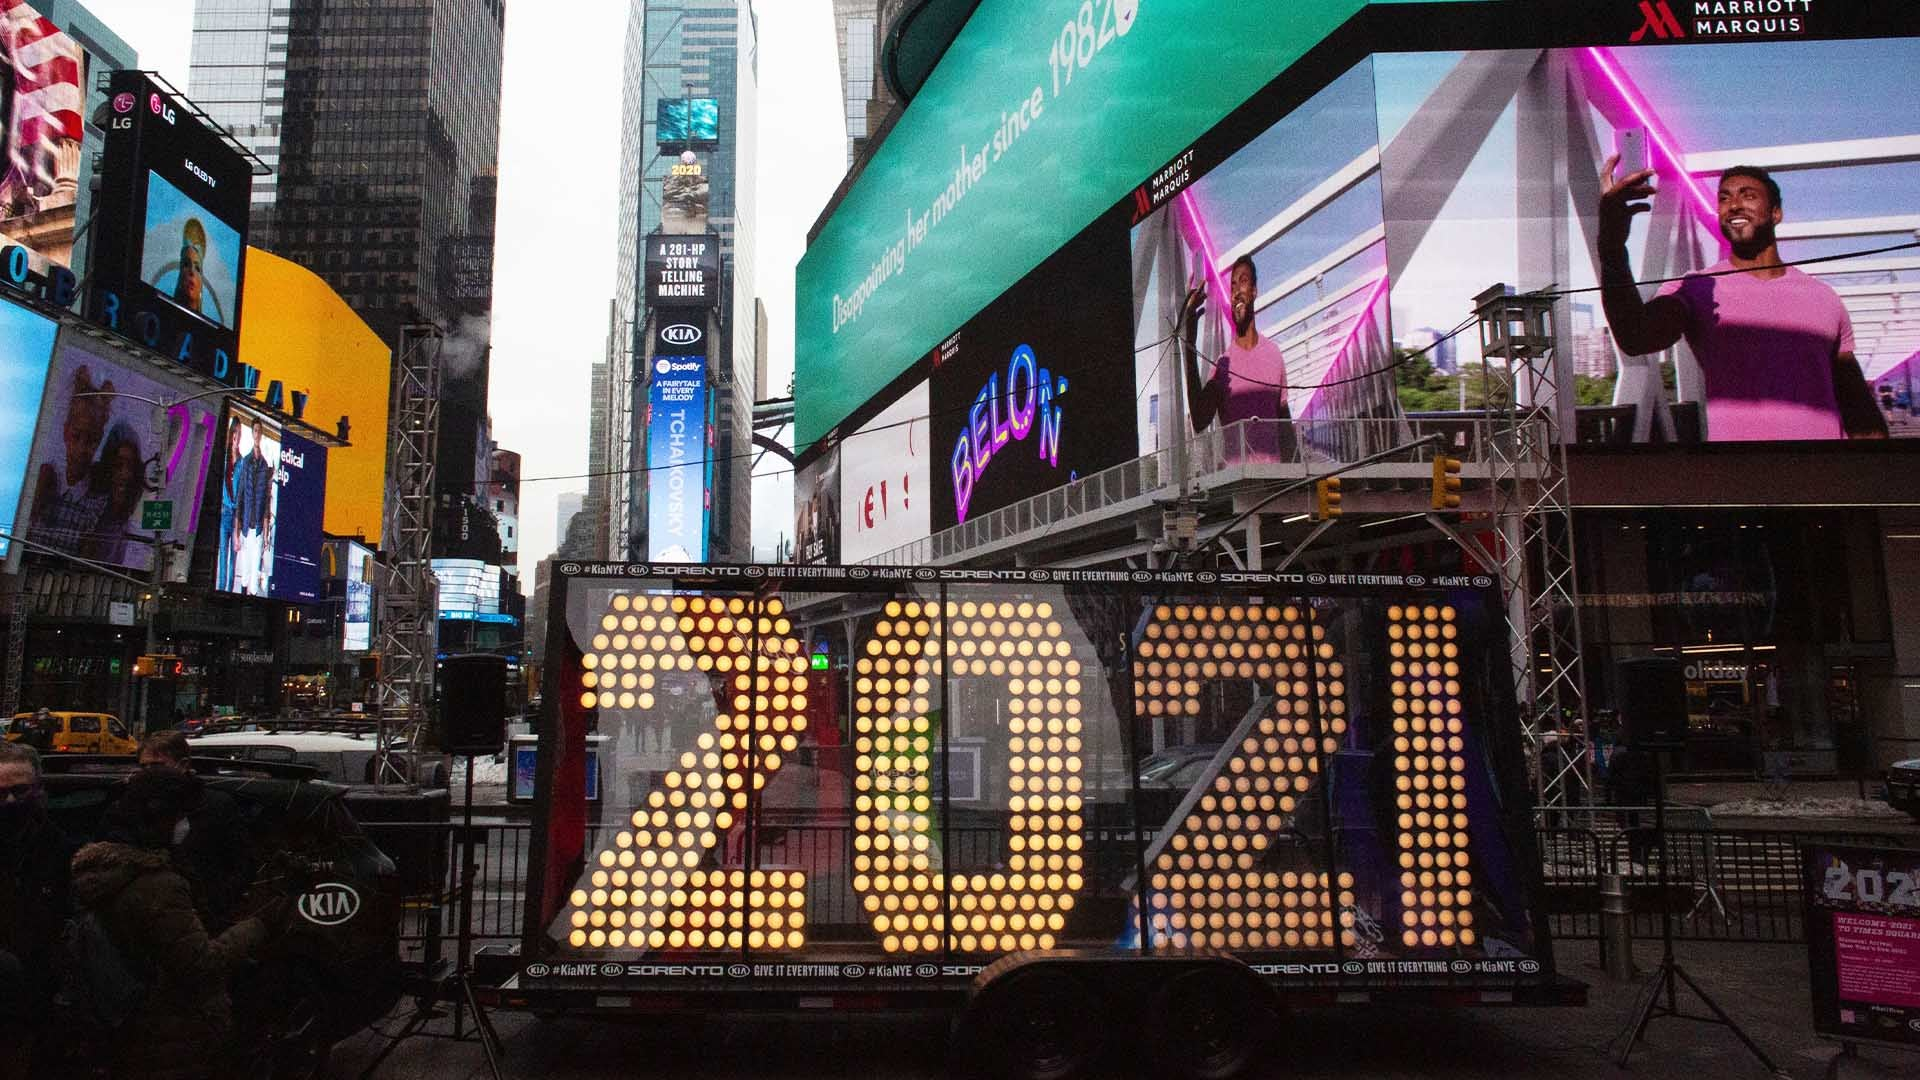 New Year's Ball Drop in Times Square Will Be Attended by Just 100 People | Inside Edition